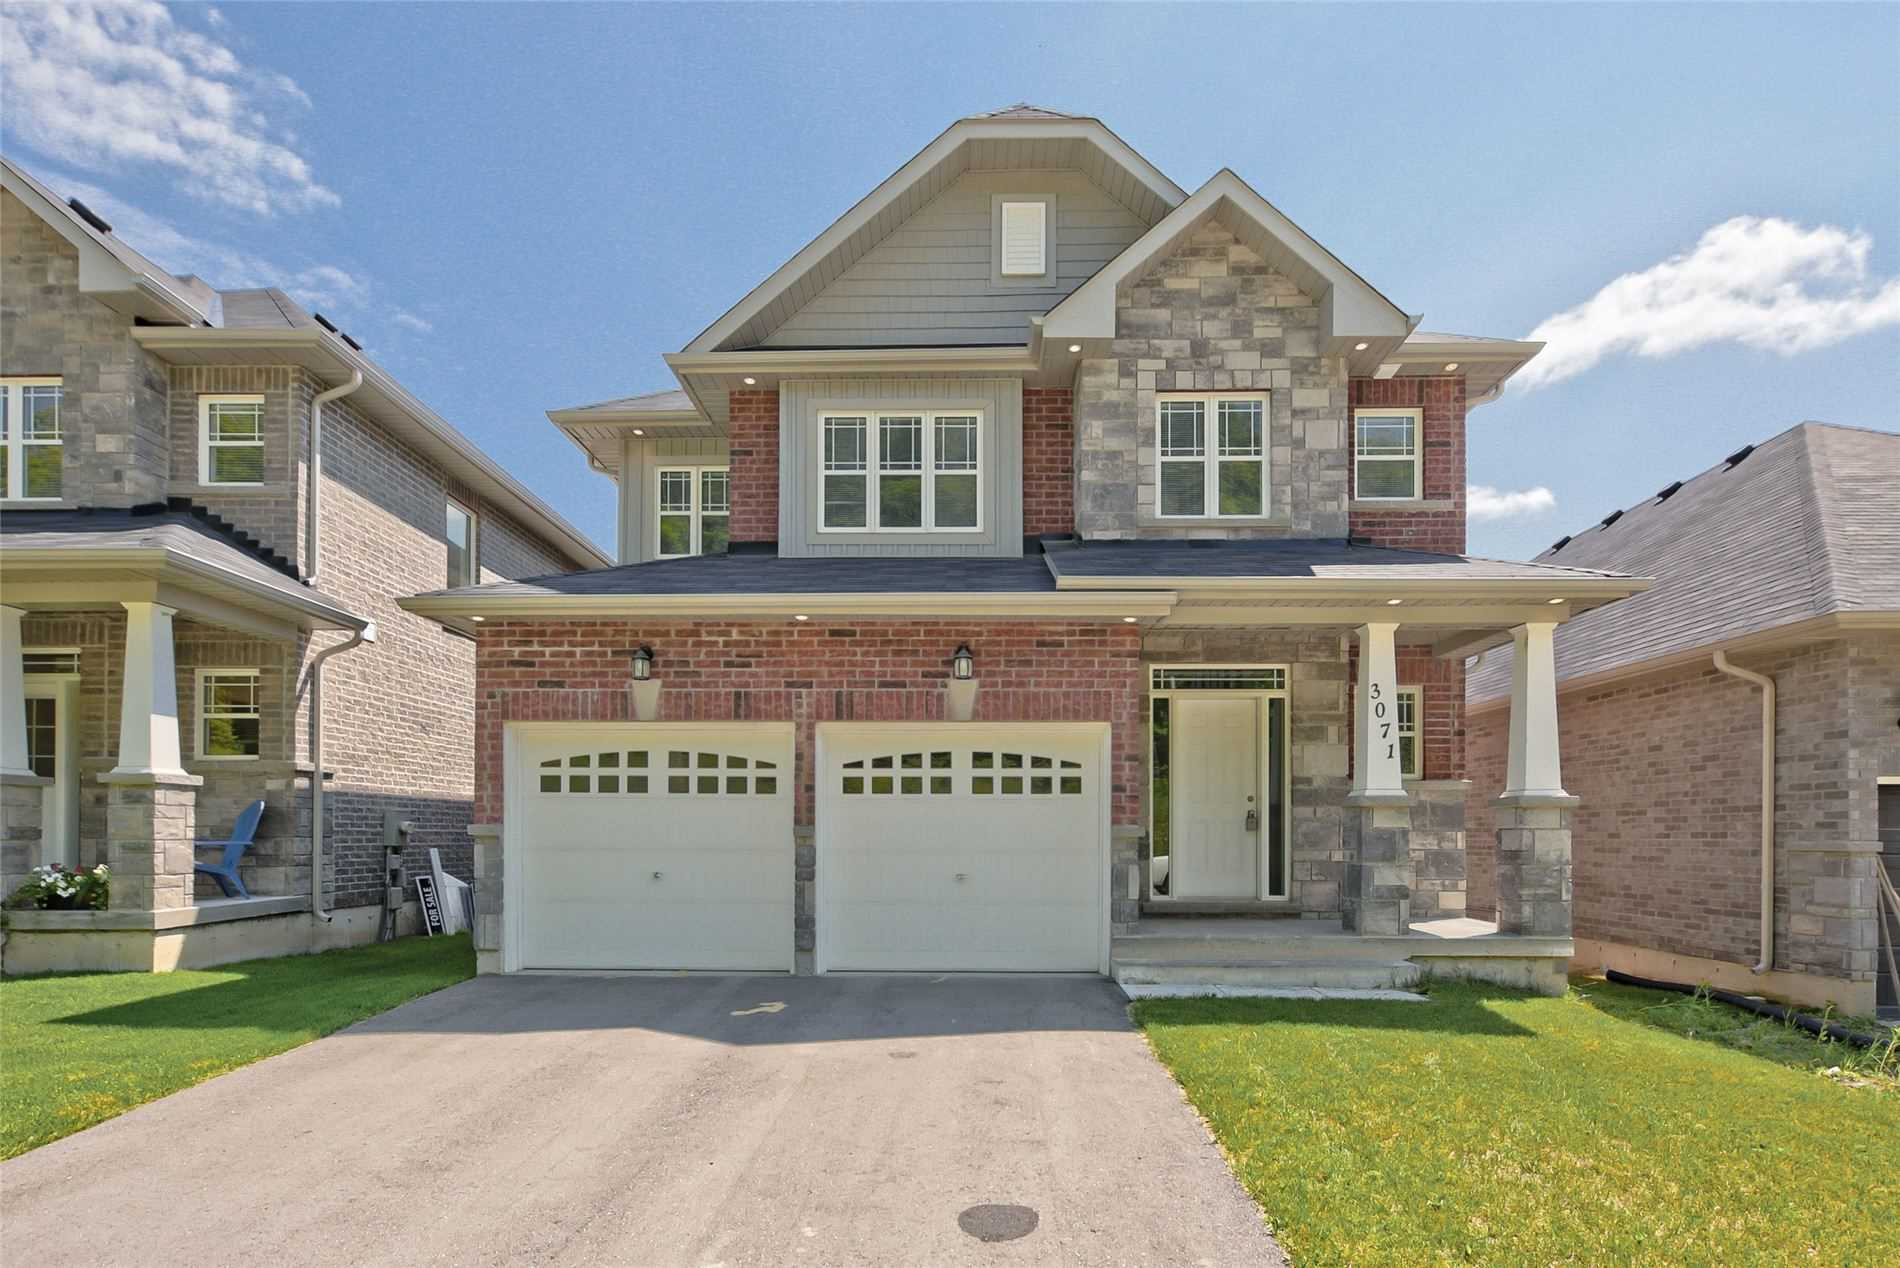 Detached house For Sale In Orillia